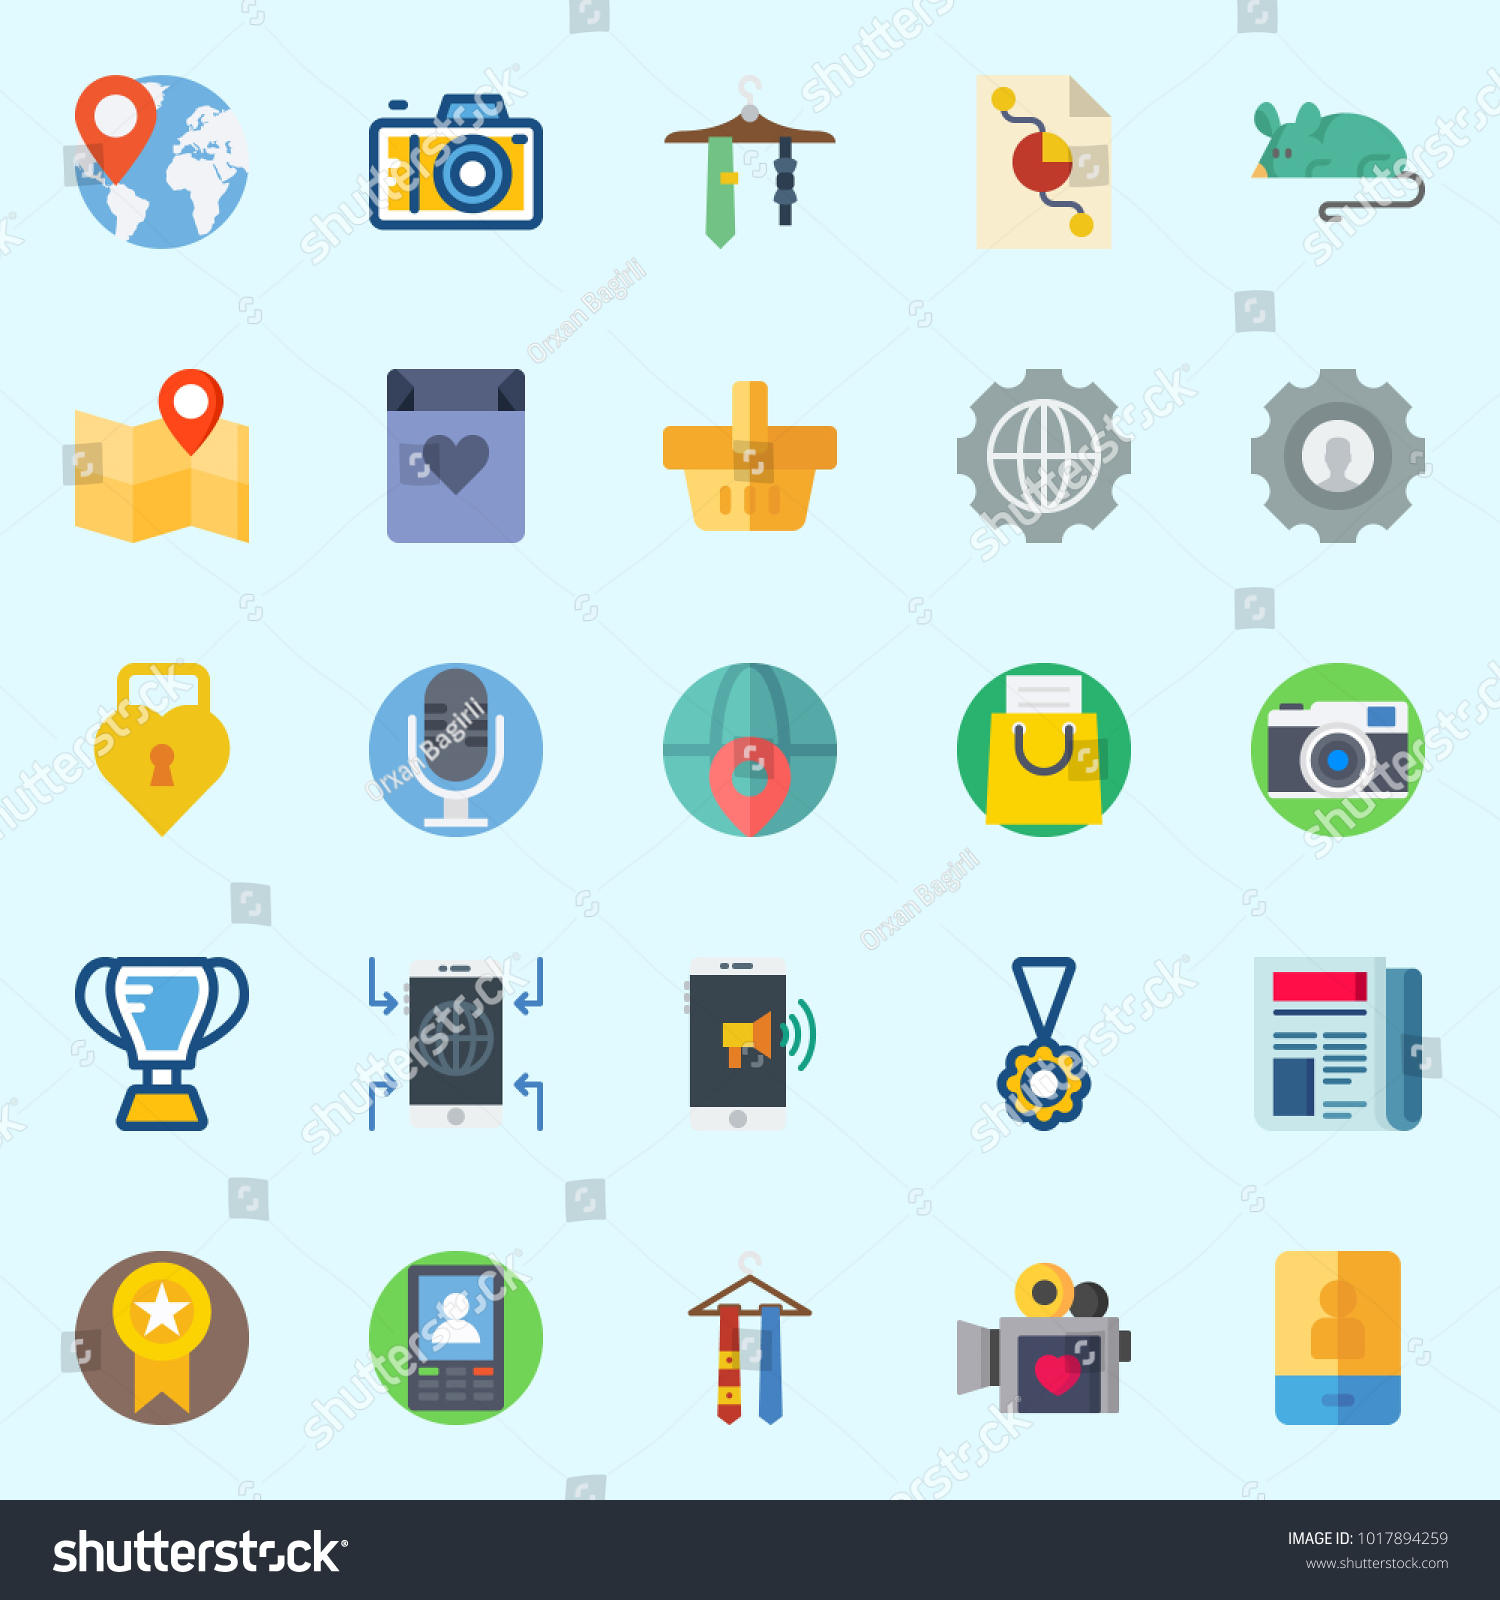 Icons about digital marketing pie chart stock vector 1017894259 icons about digital marketing with pie chart location shopping basket medal video nvjuhfo Image collections